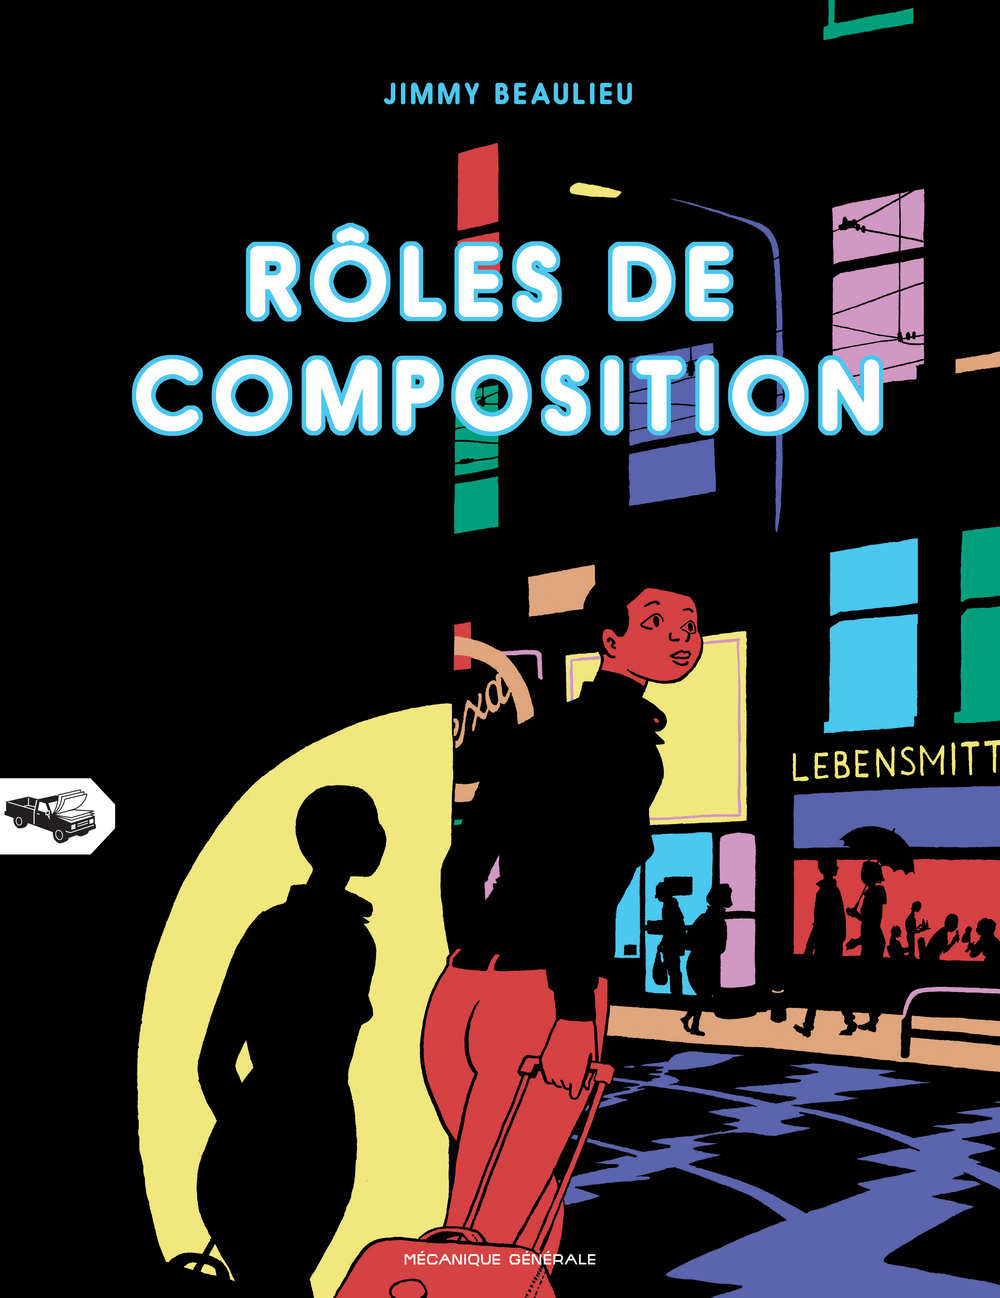 usr_img/2016-12/decembre/semaine2/rolesdecomposition.jpg